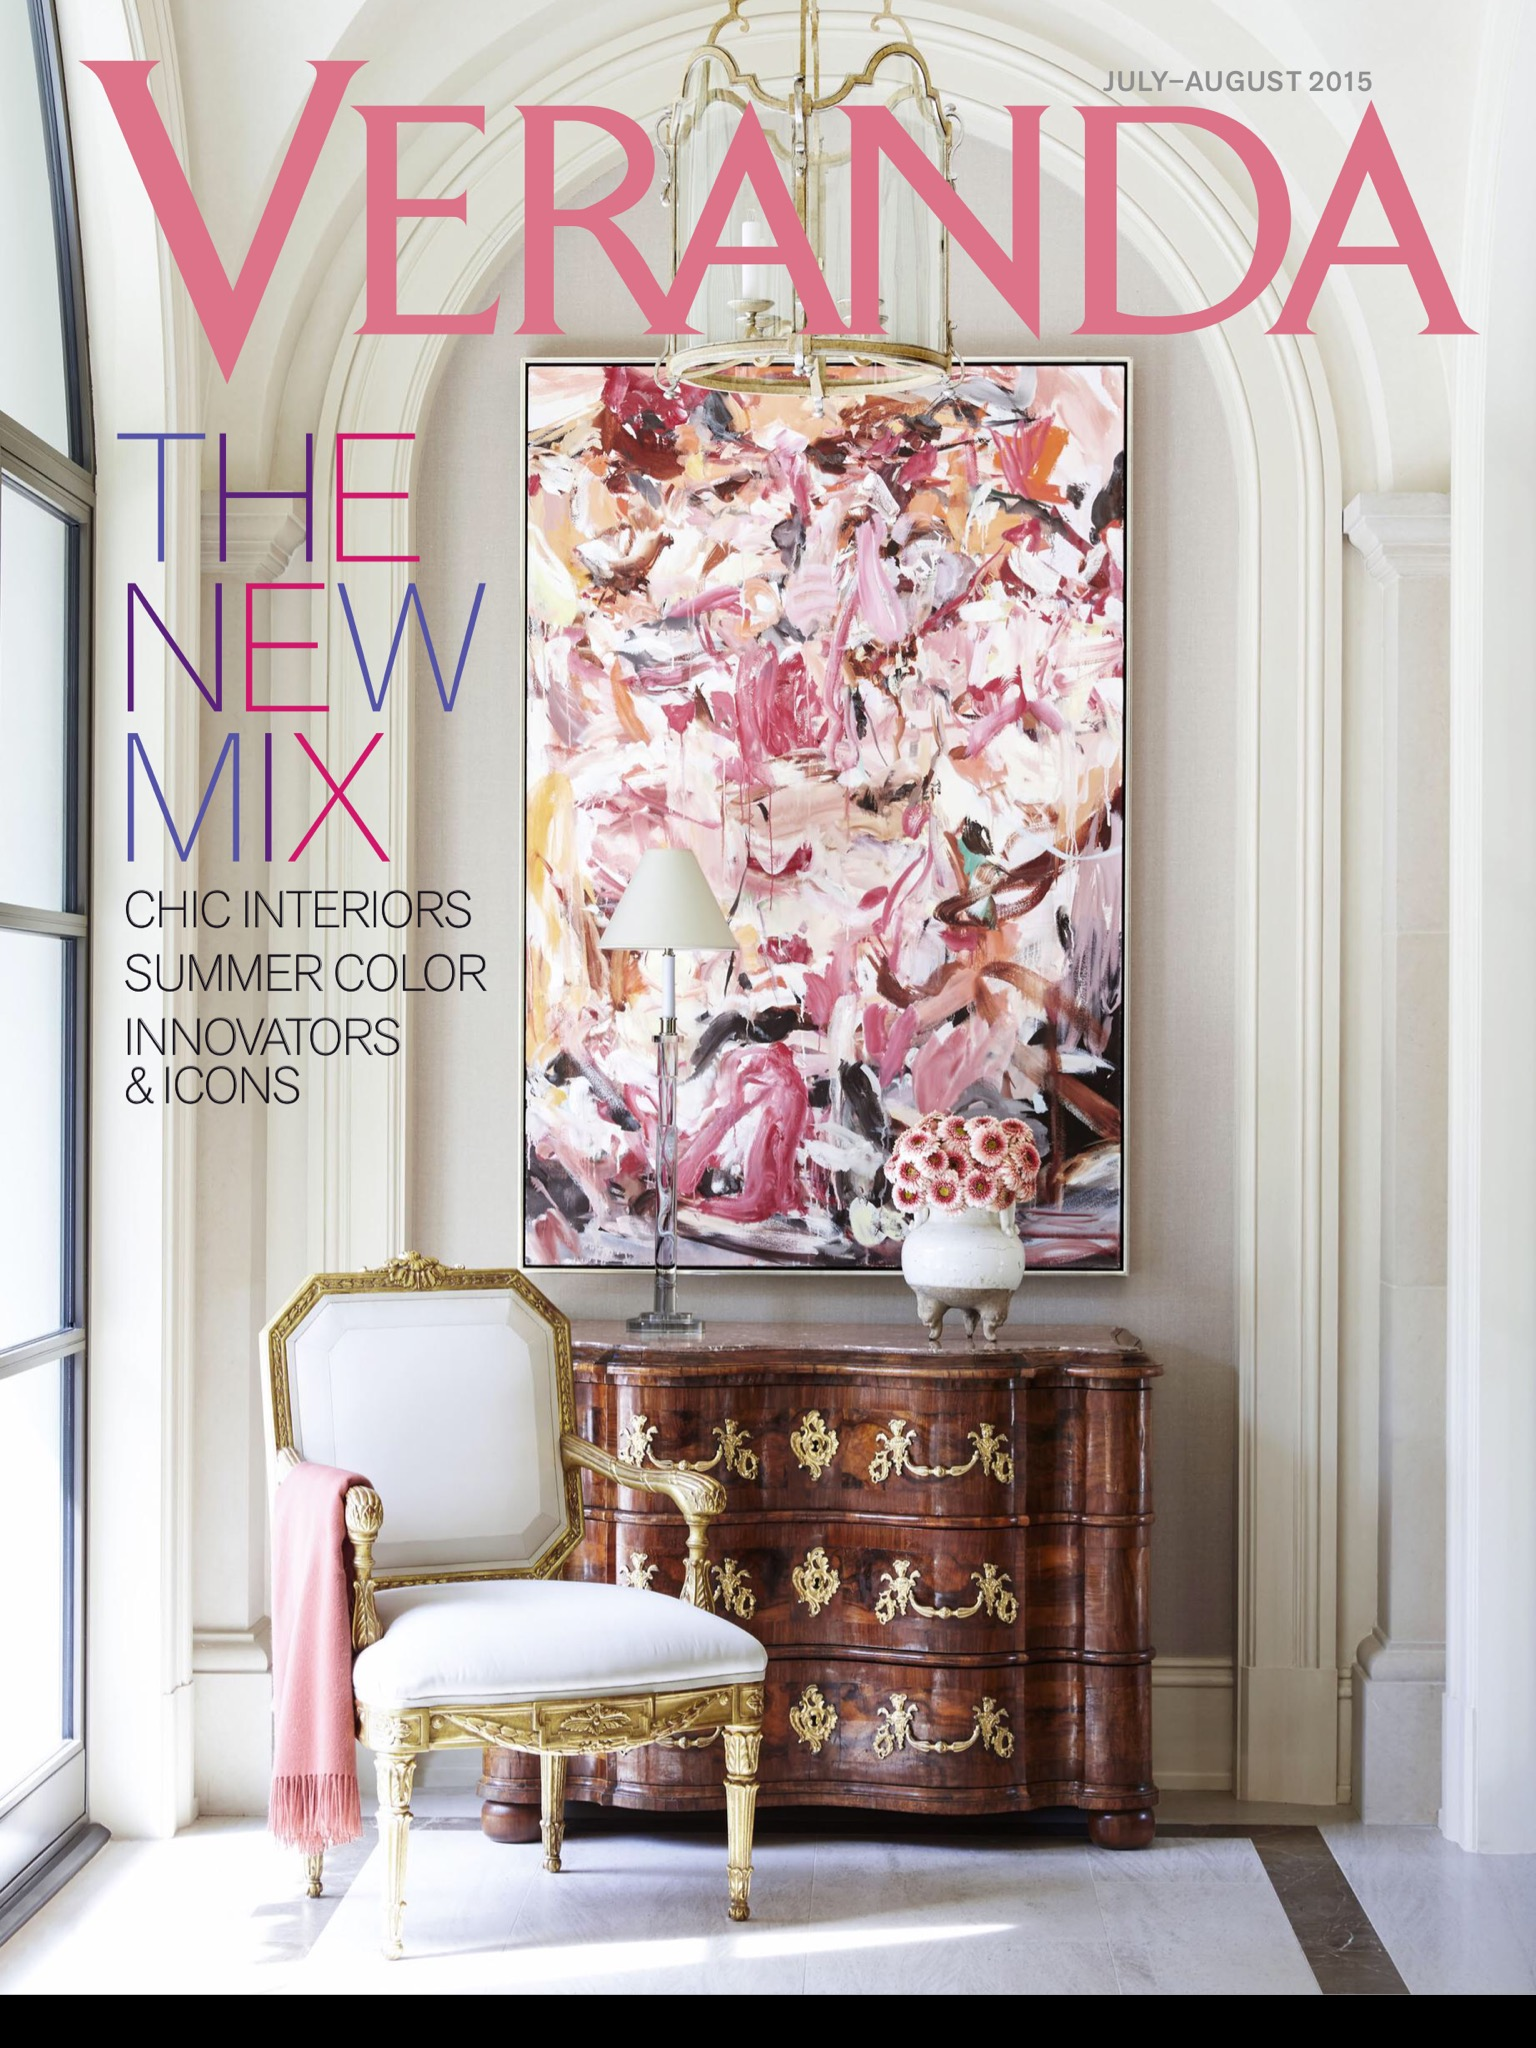 Veranda July-August 2015_1